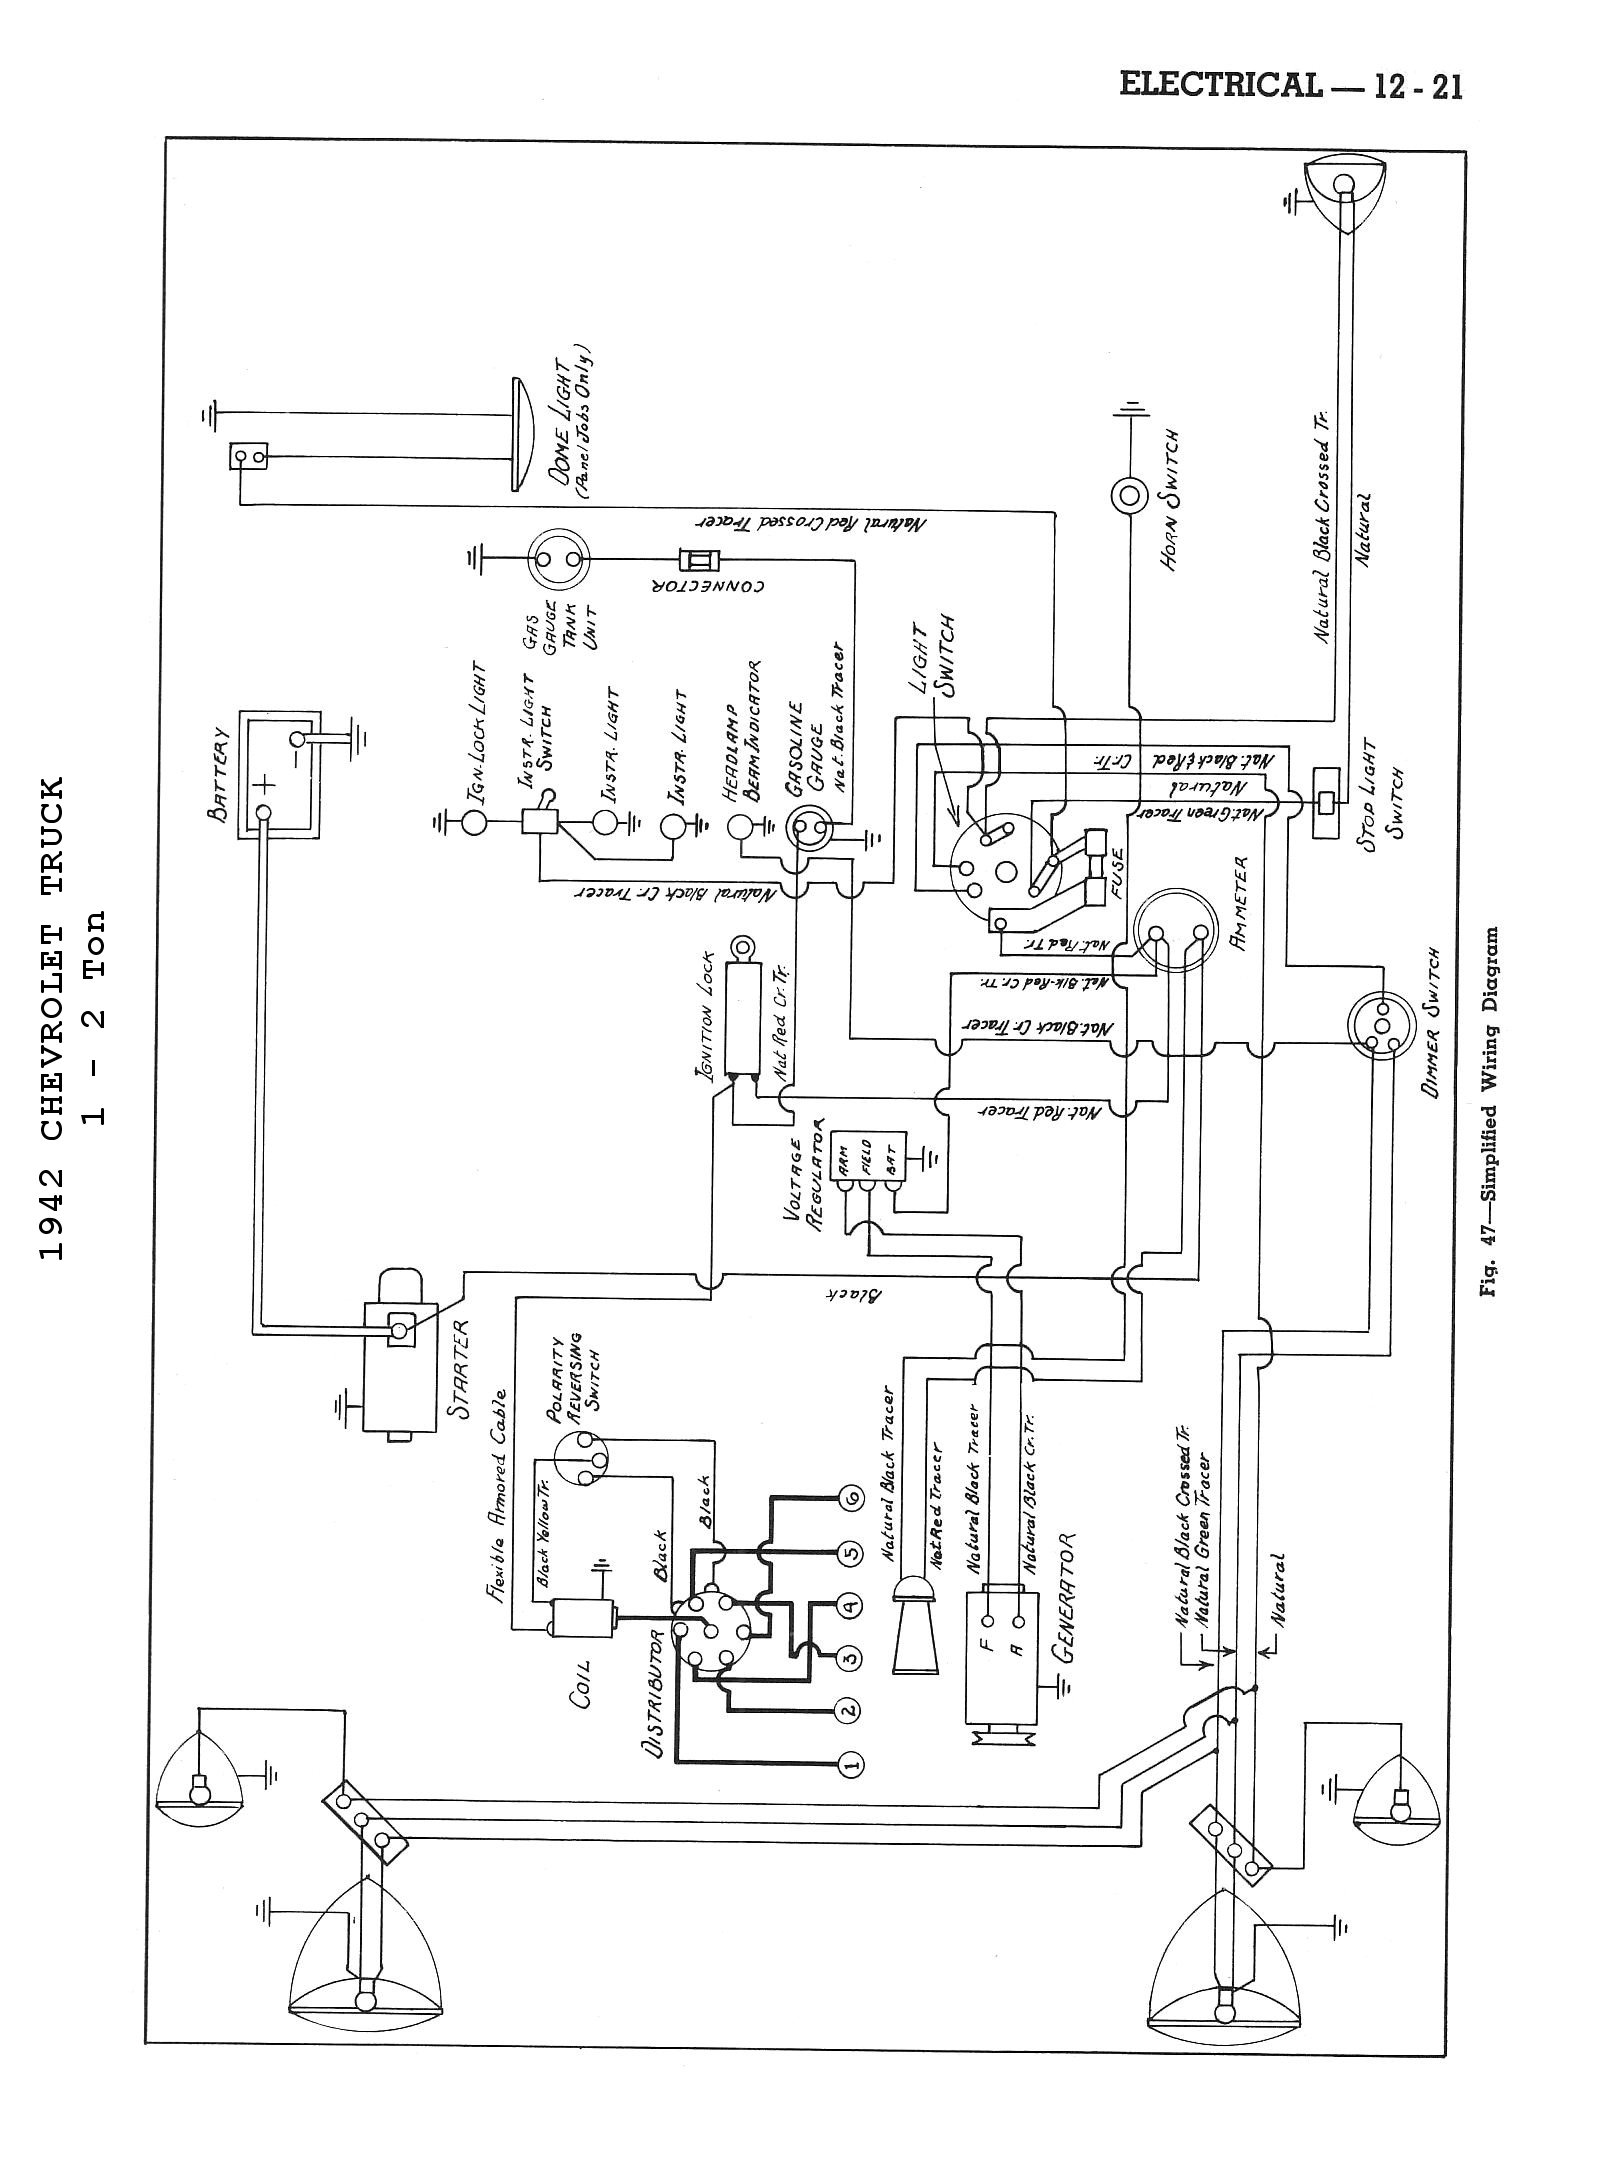 1952 chevy sedan turn signal wiring diagram wiring